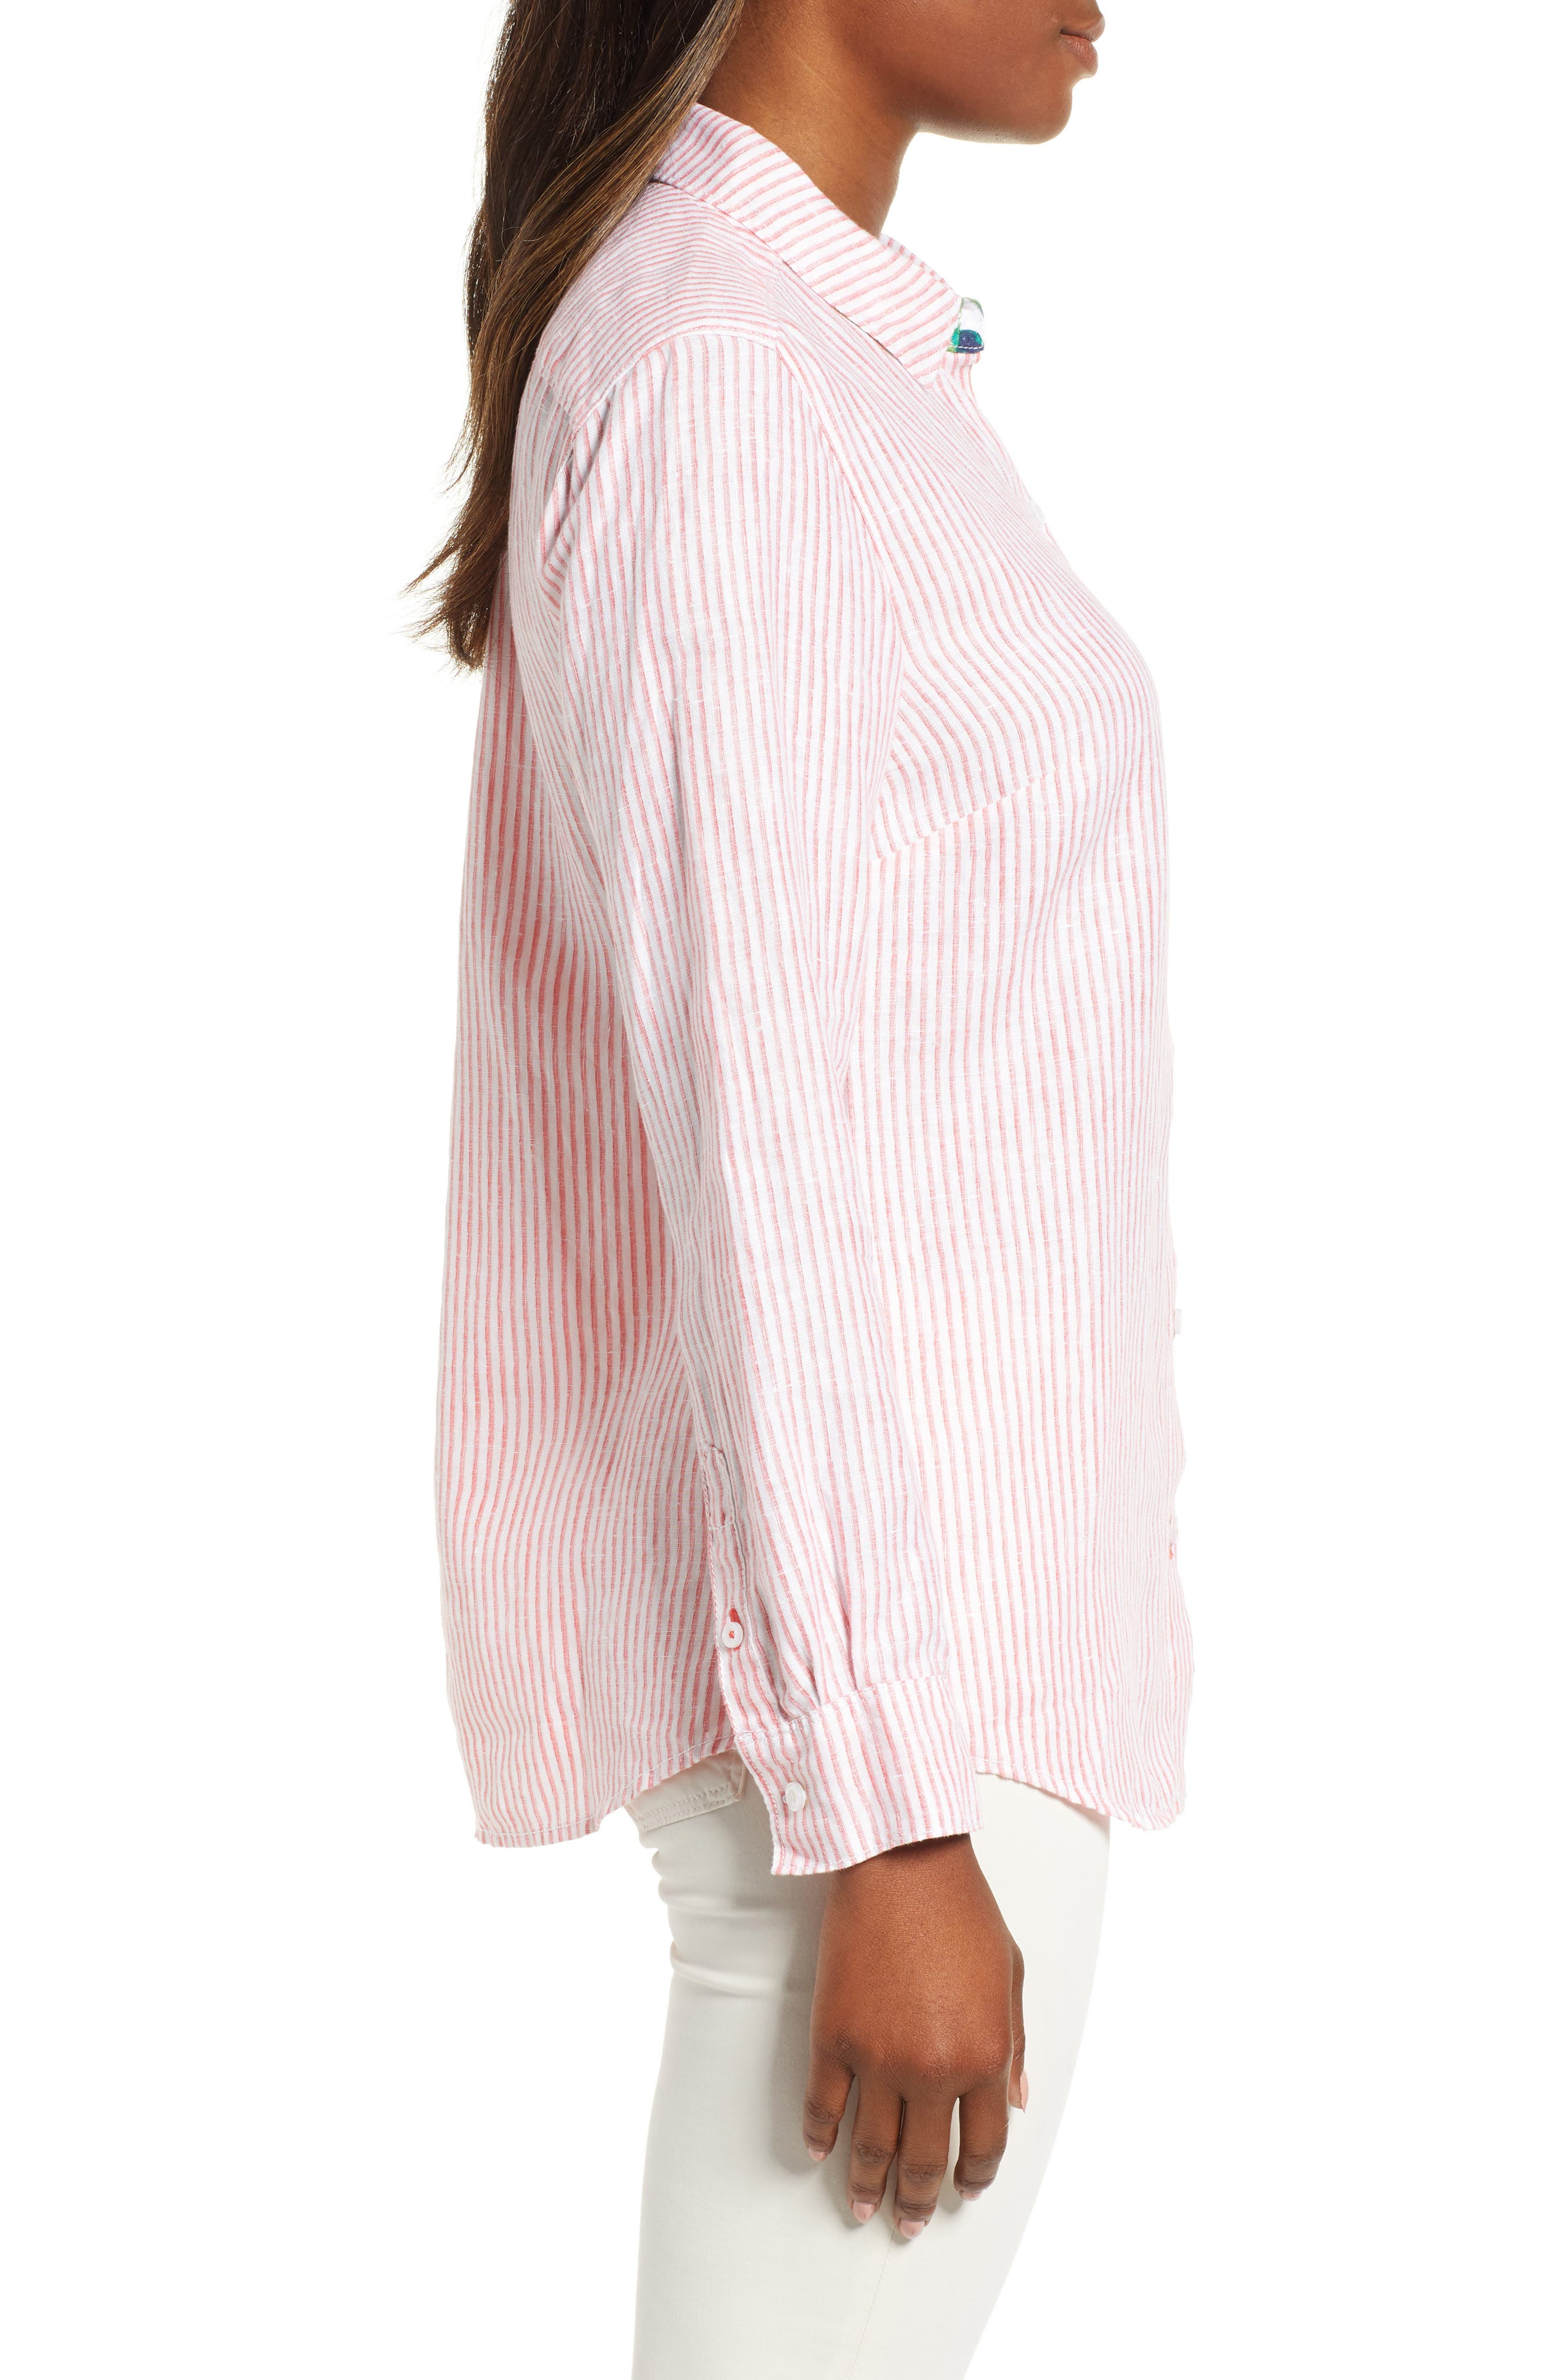 Crystalline Waters Long Sleeve Shirt,                             Alternate thumbnail 3, color,                             DUBARRY CORAL